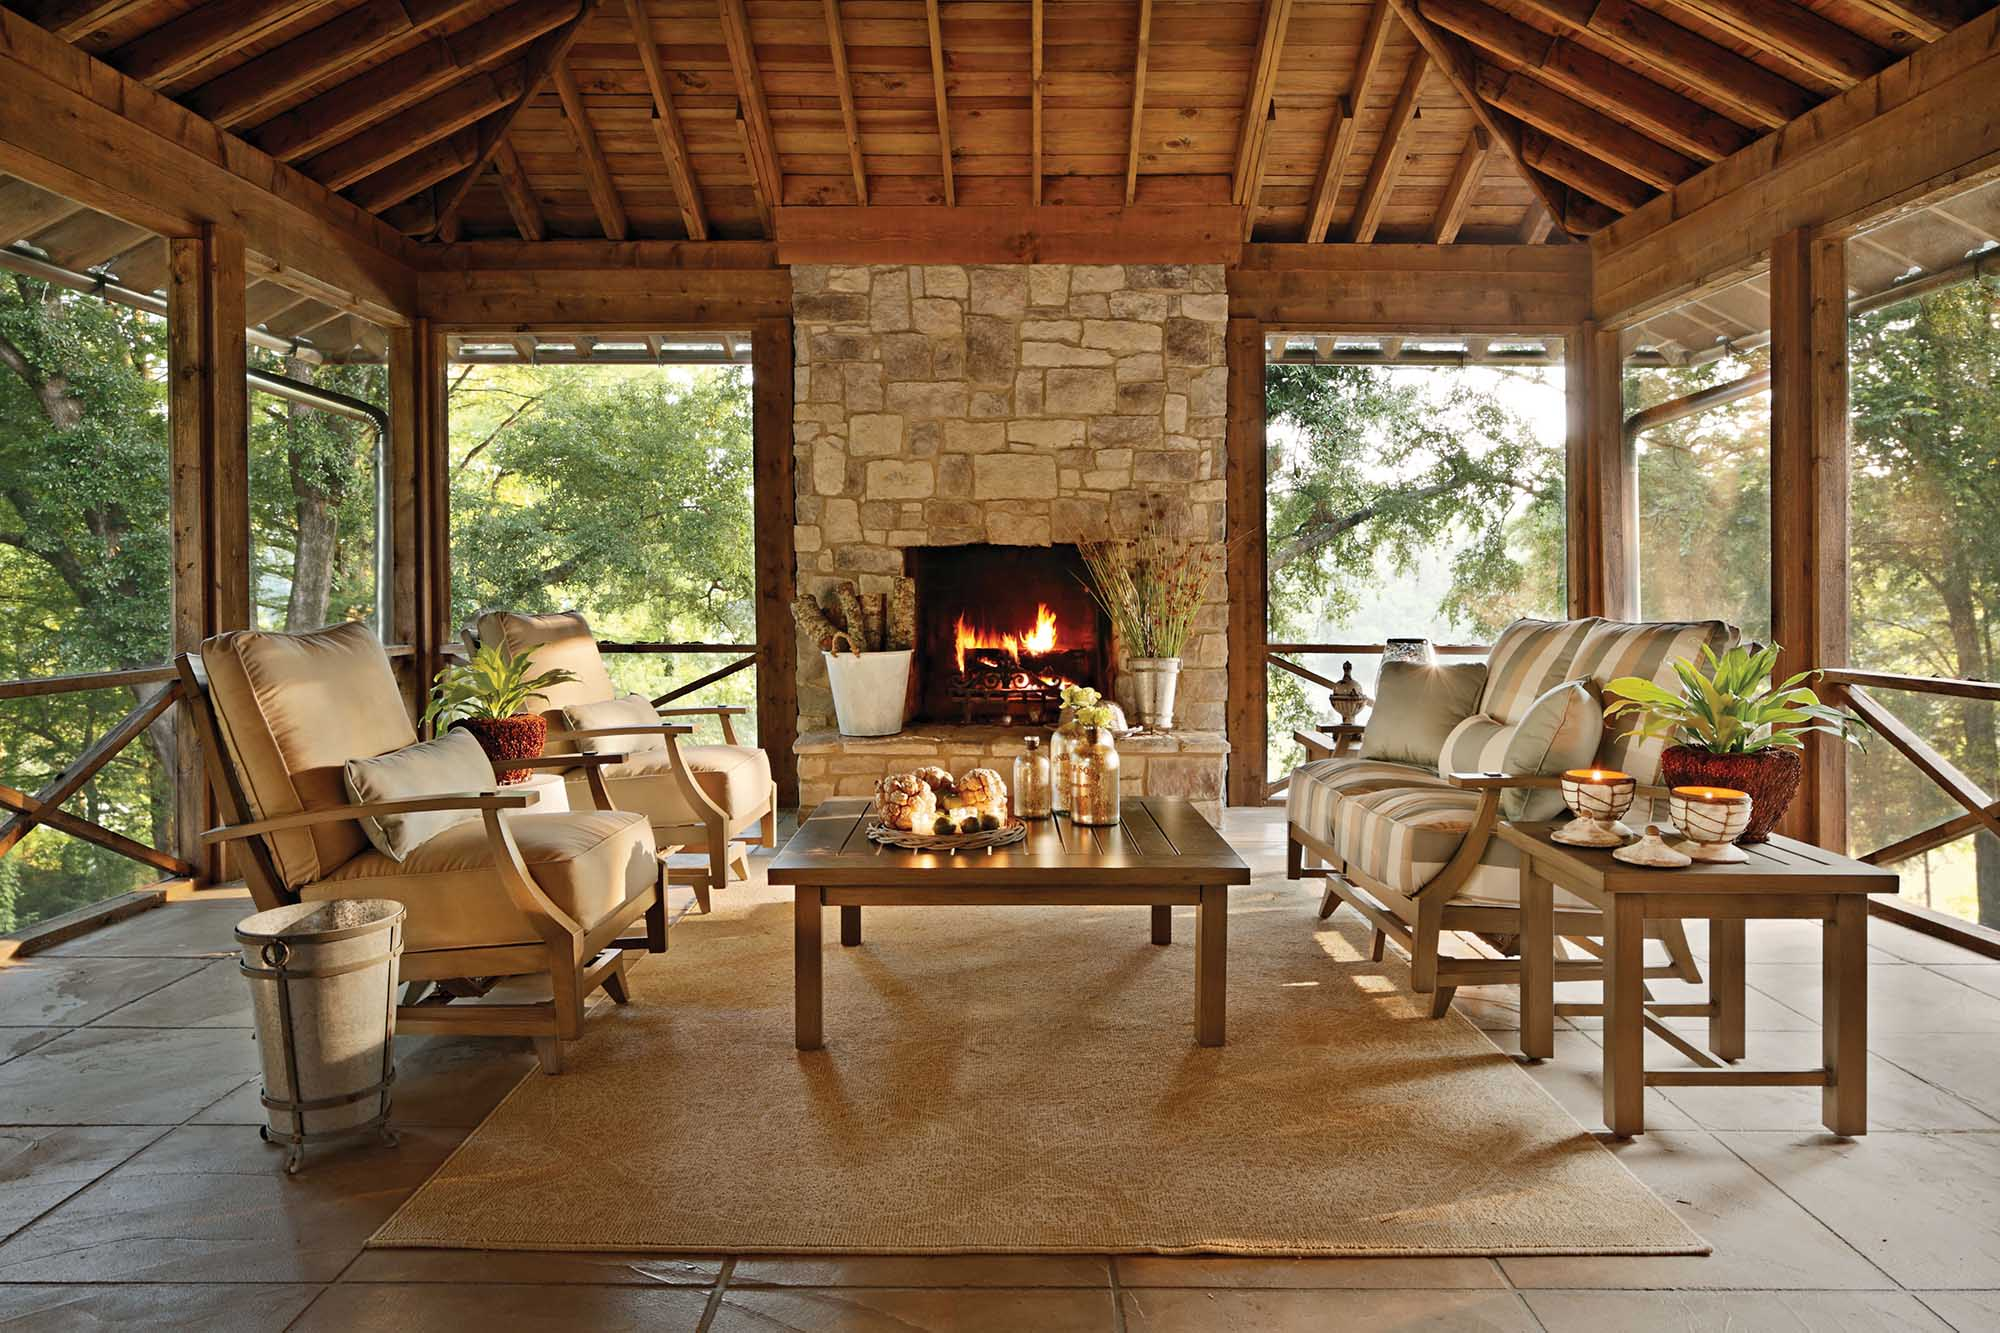 Great Summer Classics Outdoor Furniture Warranty. Check Out Hudsonu0027s Bay ... Part 31